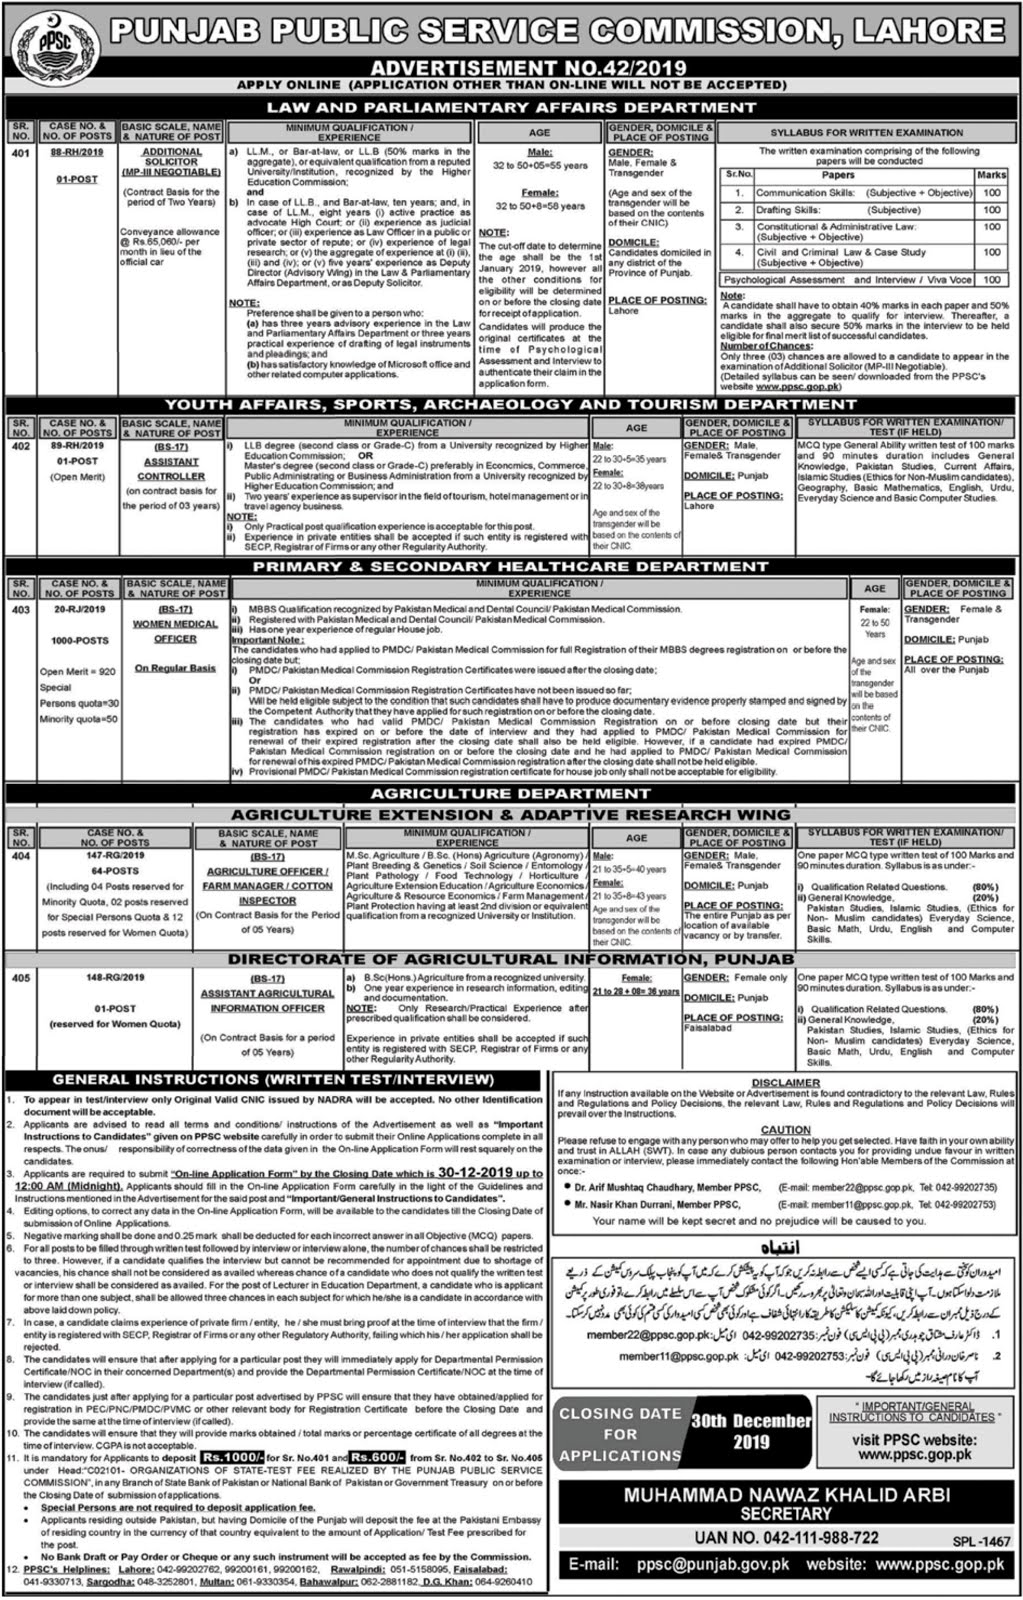 PPSC Jobs December 2019 Advertisement No 42/2019 (1067 Posts)